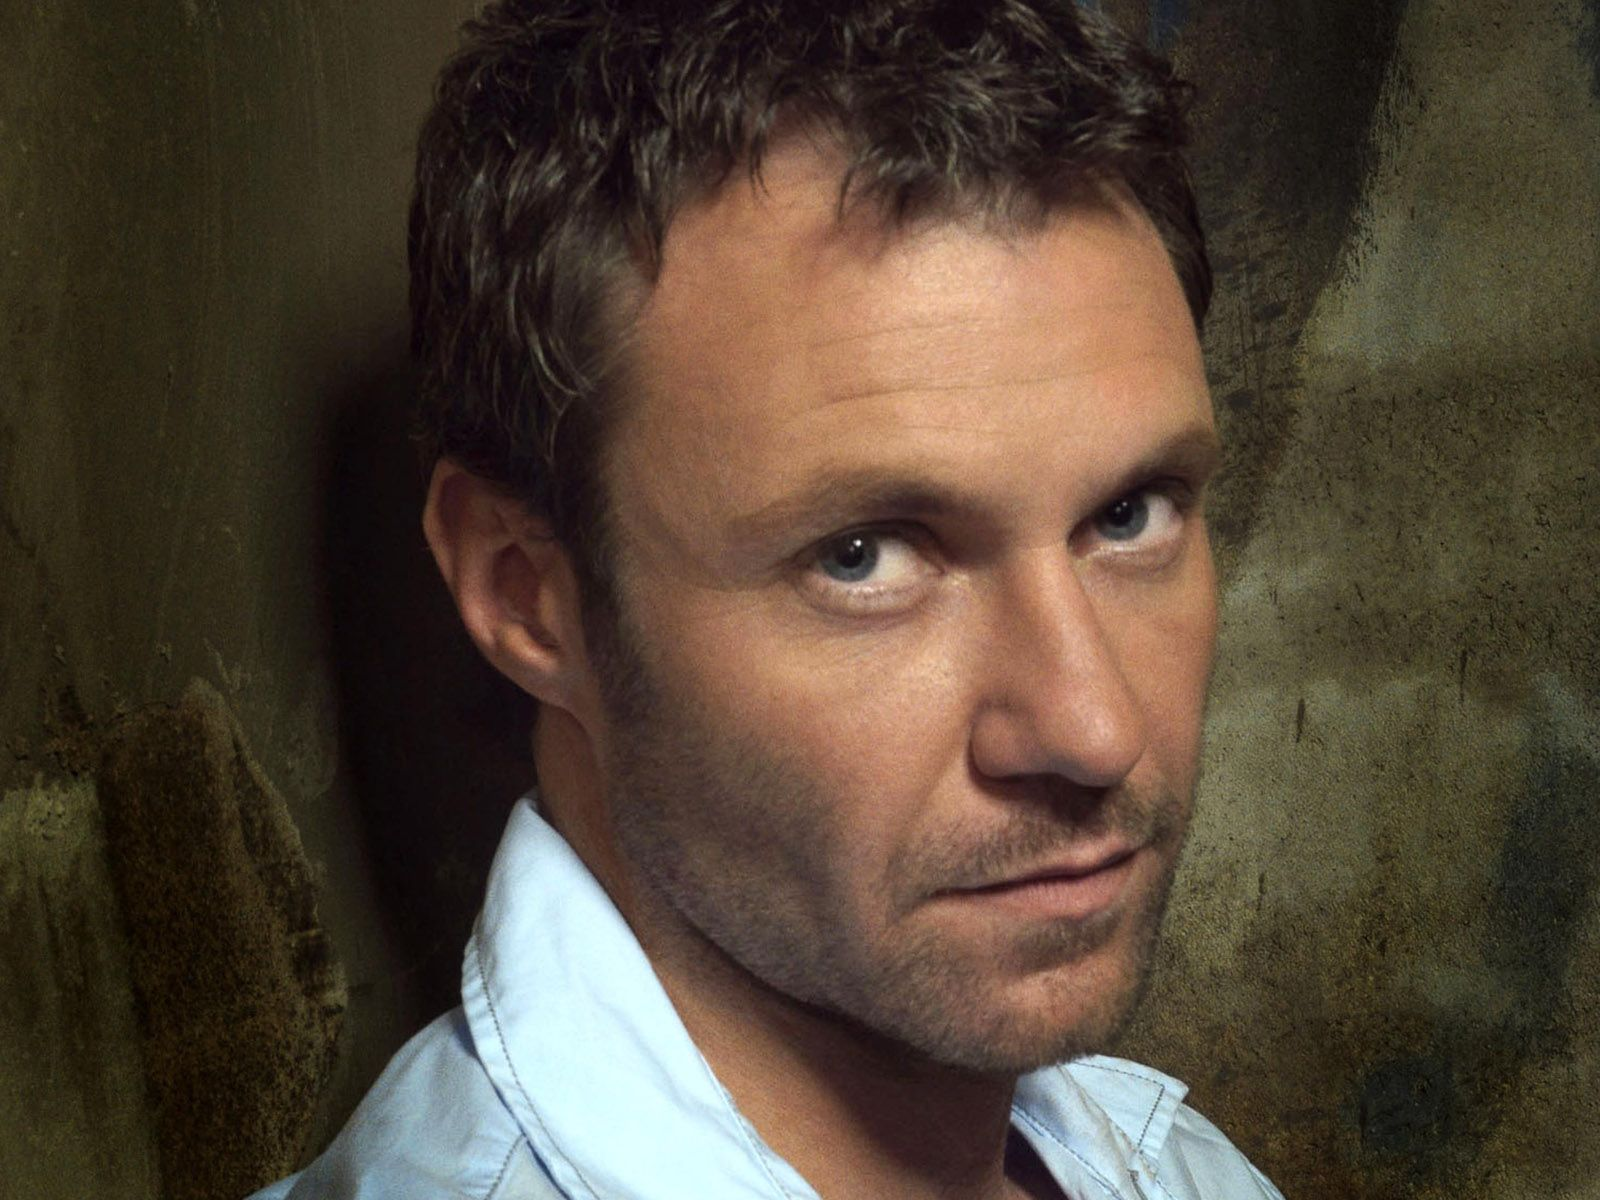 Chris Vance HQ wallpapers